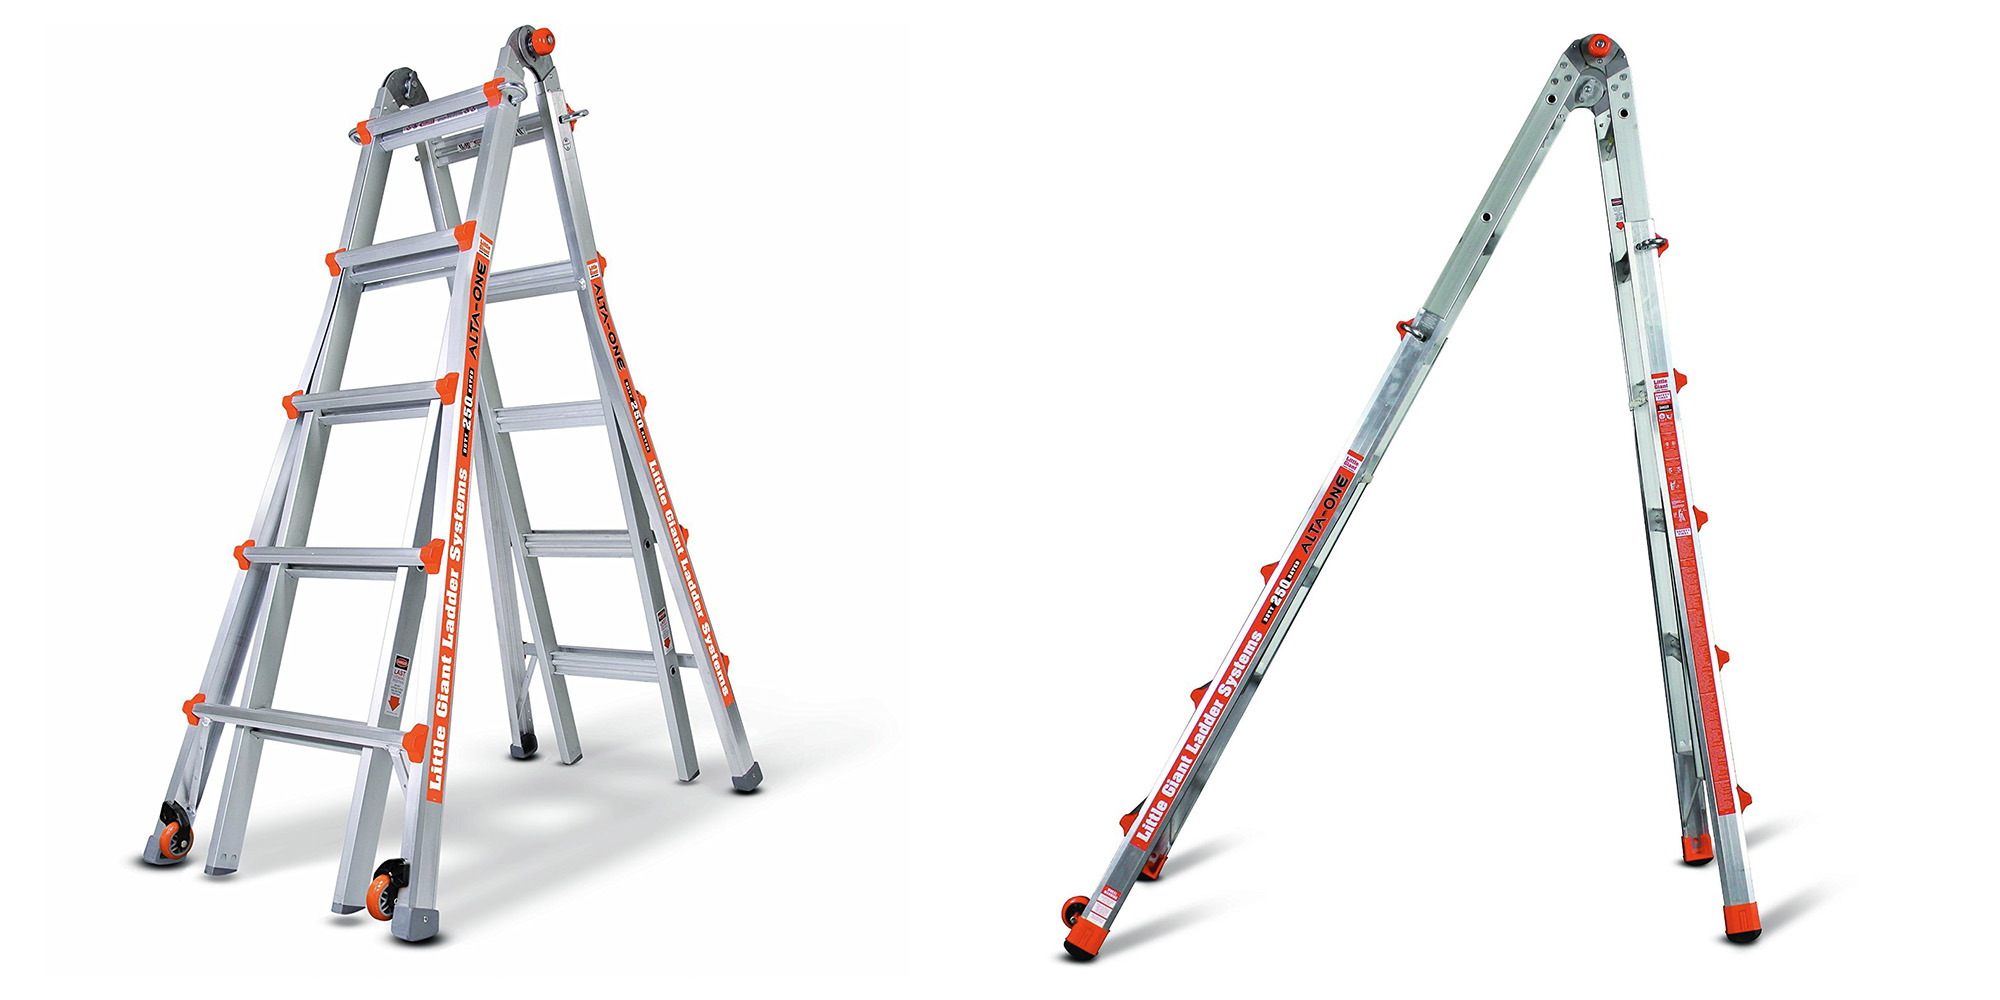 Product Description. The Little Giant Alta-One Model Inch hinge locks and telescoping sides let you safely use the Alta-One as an adjustable extension ladder, A-frame ladder, staircase ladder, and as a trestle-and-plank scaffolding system.